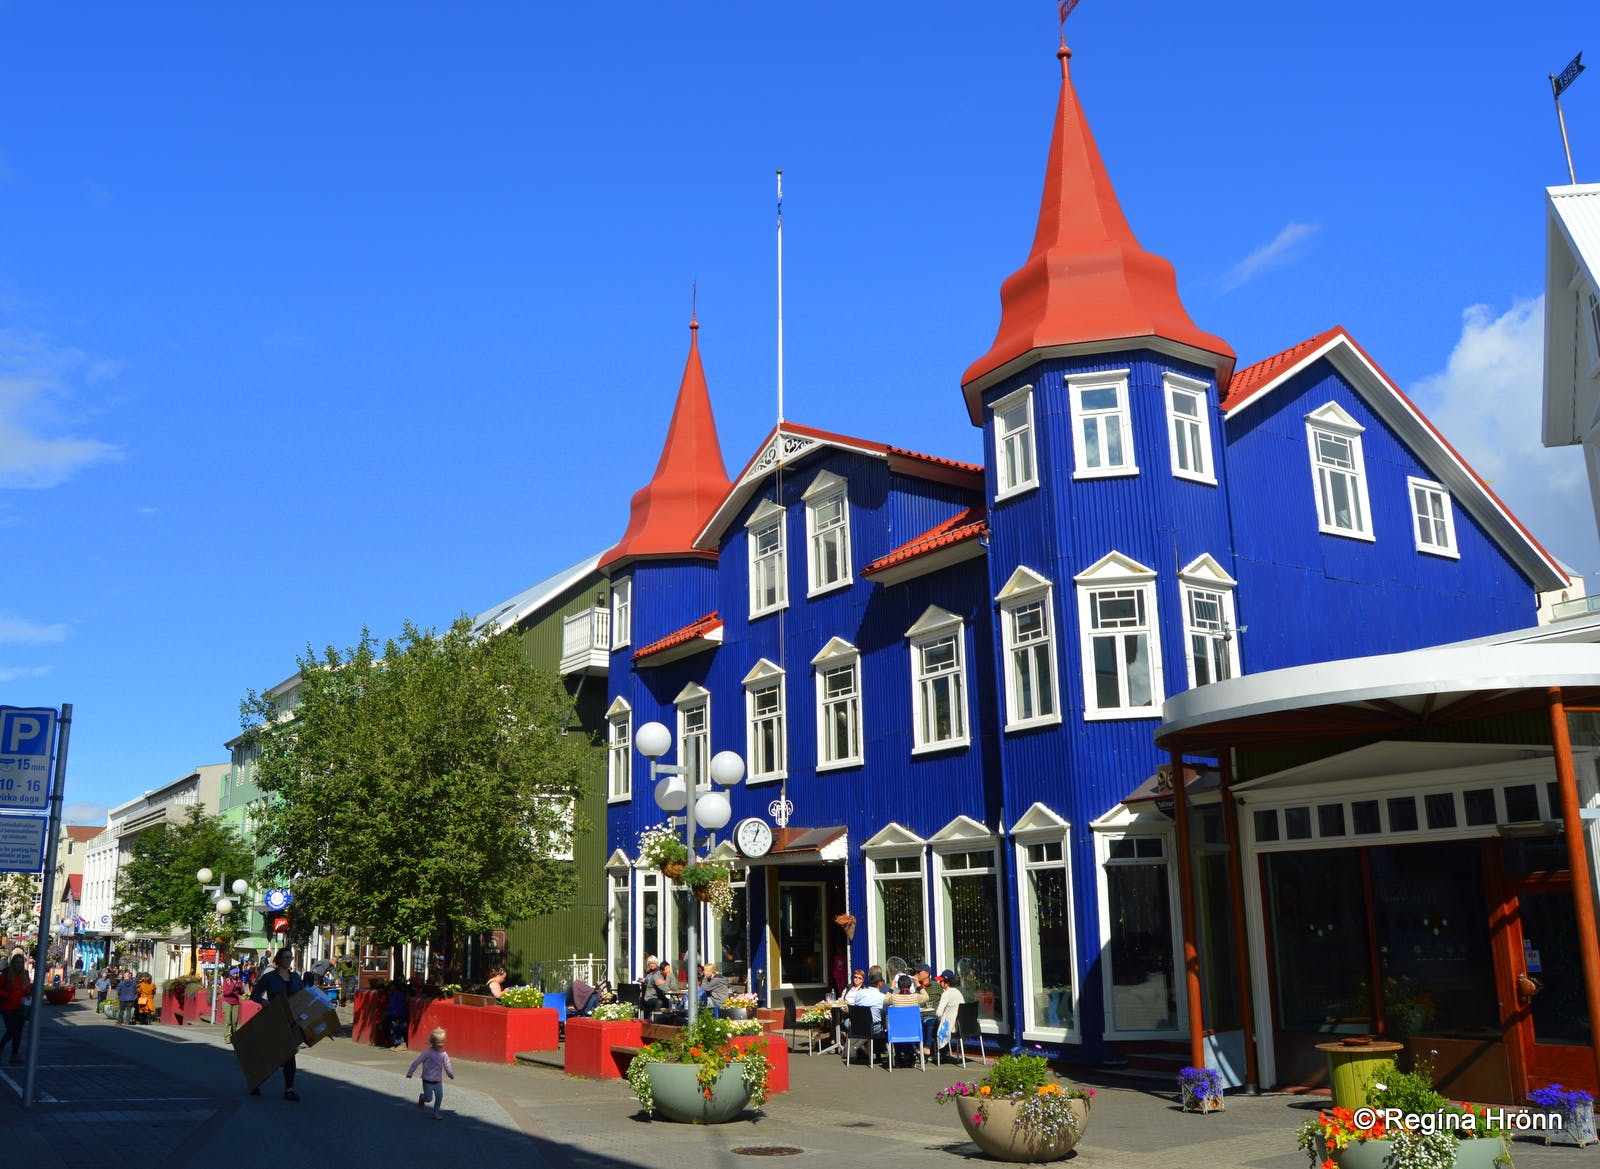 10 Day Summer Package | Guided Tour Around Iceland with Free Days in Reykjavik - day 8